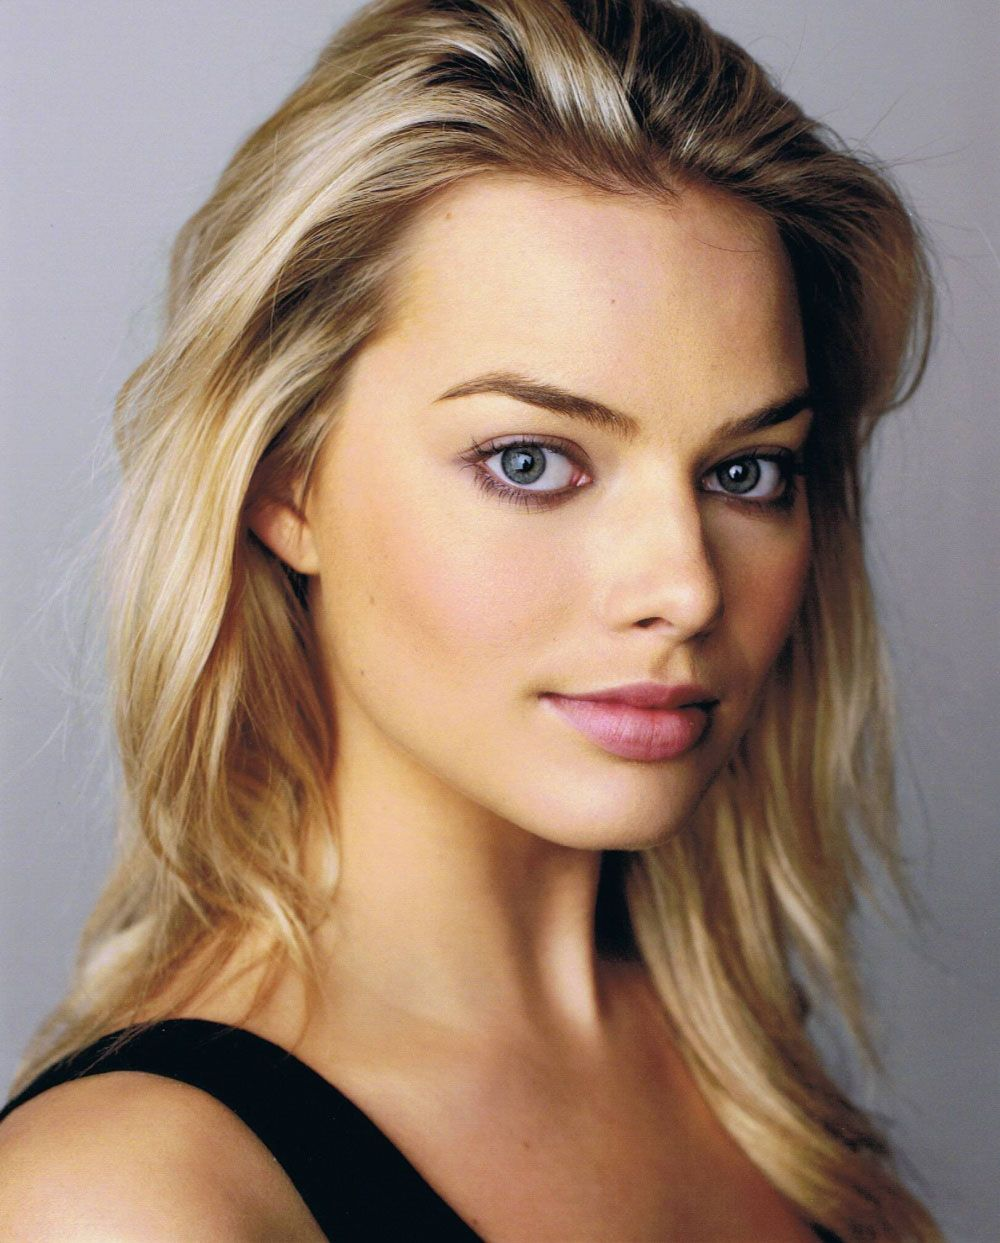 Margot Robbie HD wallpapers with High Quality and Resolution also 1000x1243